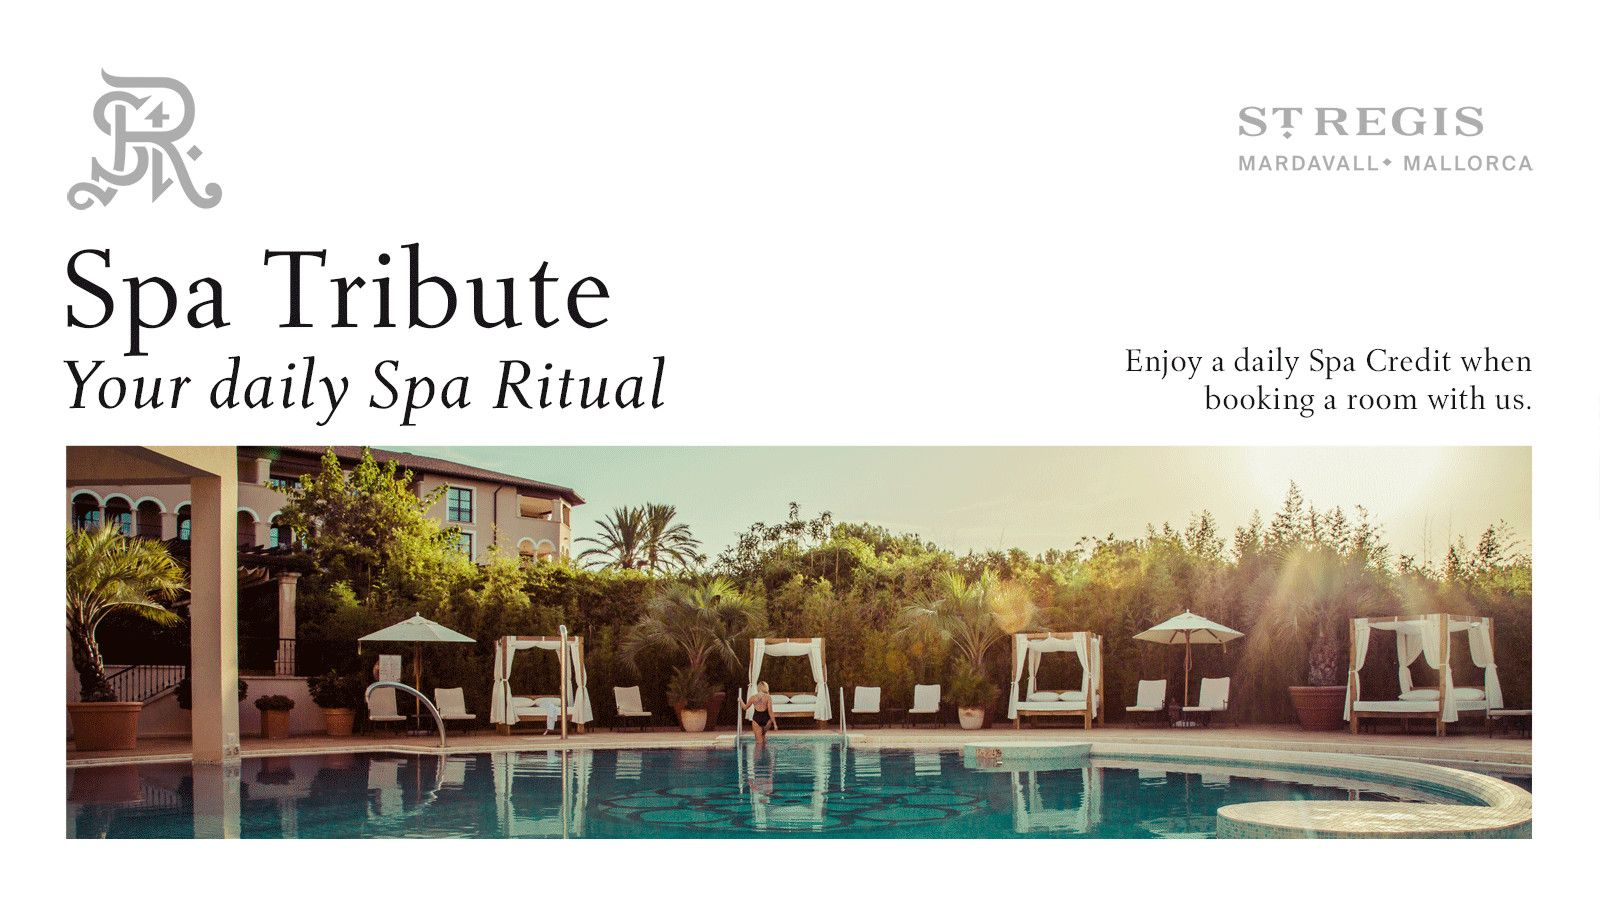 Spa Tribute daily offer at Hotel St. Regis Mallorca